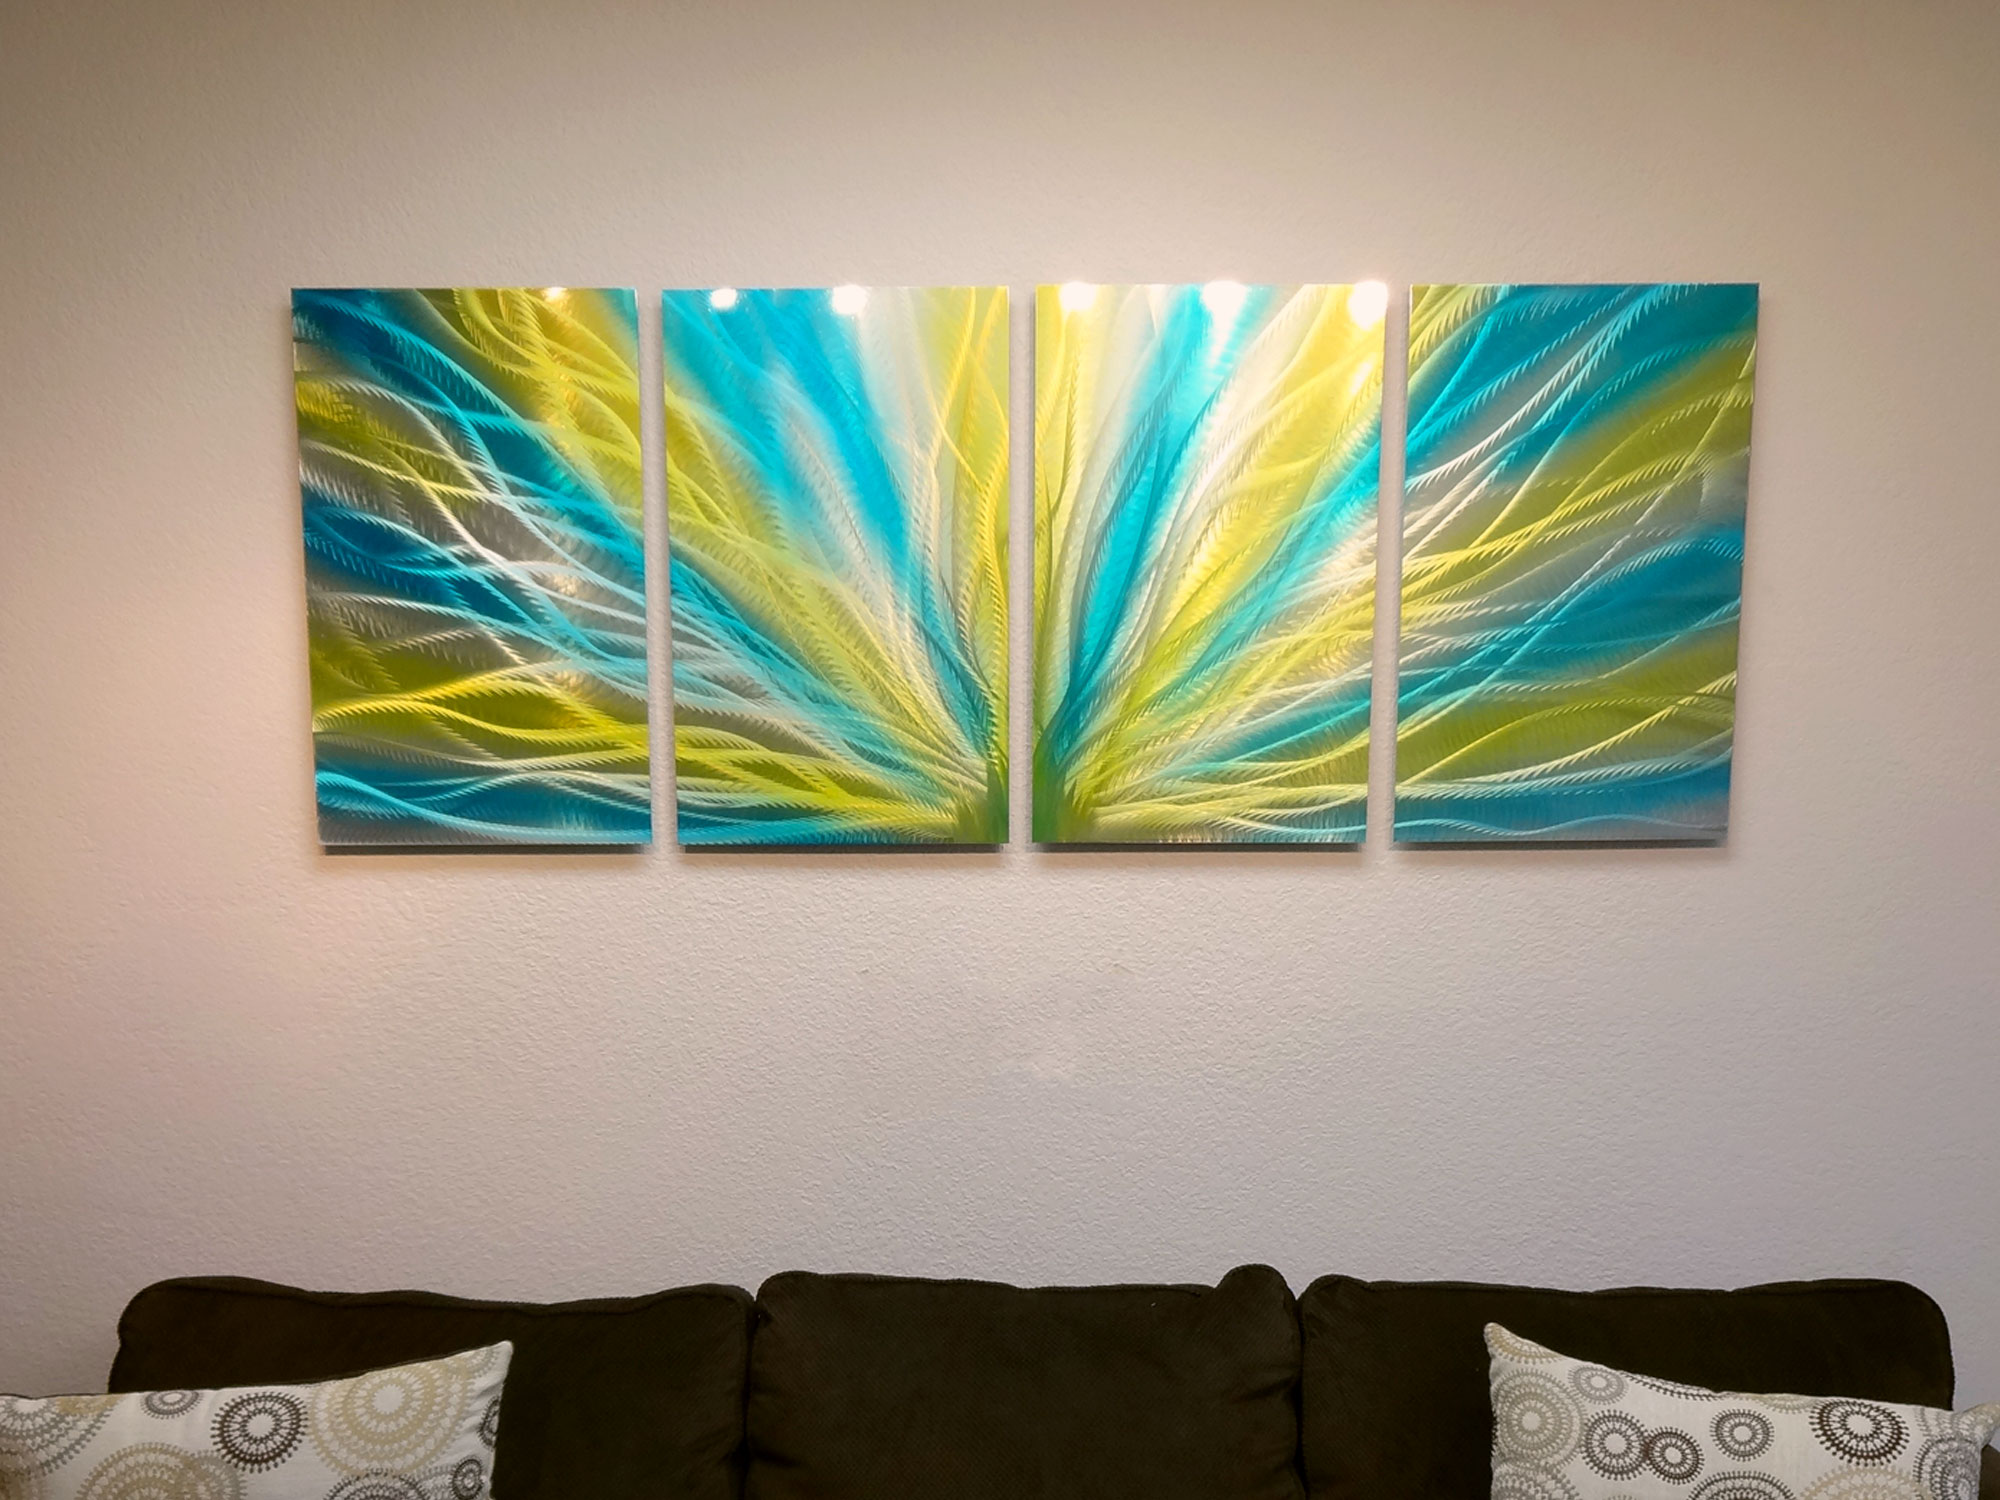 Radiance Blue Yellow- Metal Wall Art Abstract Contemporary